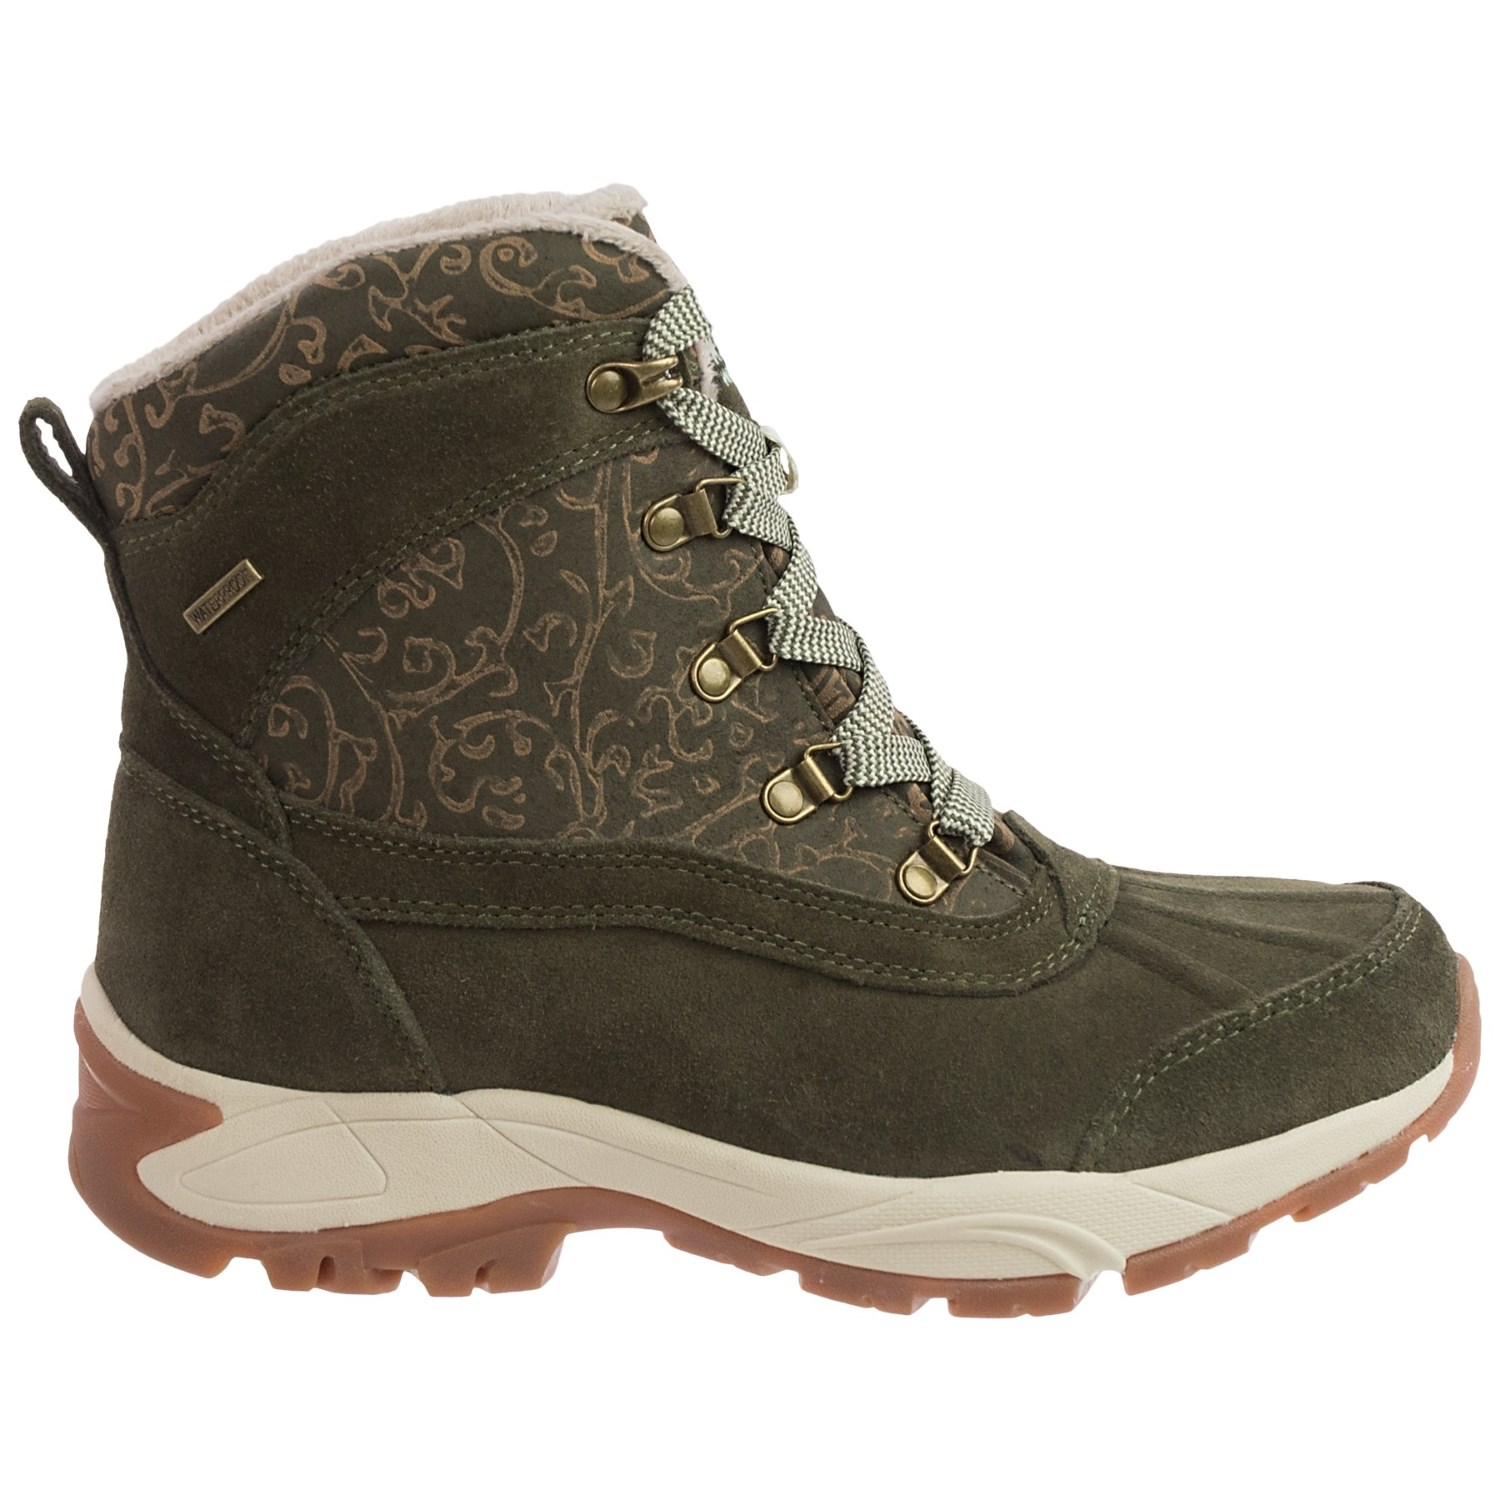 Lastest Kodiak Rochelle Snow Boots (For Women) - Save 63%